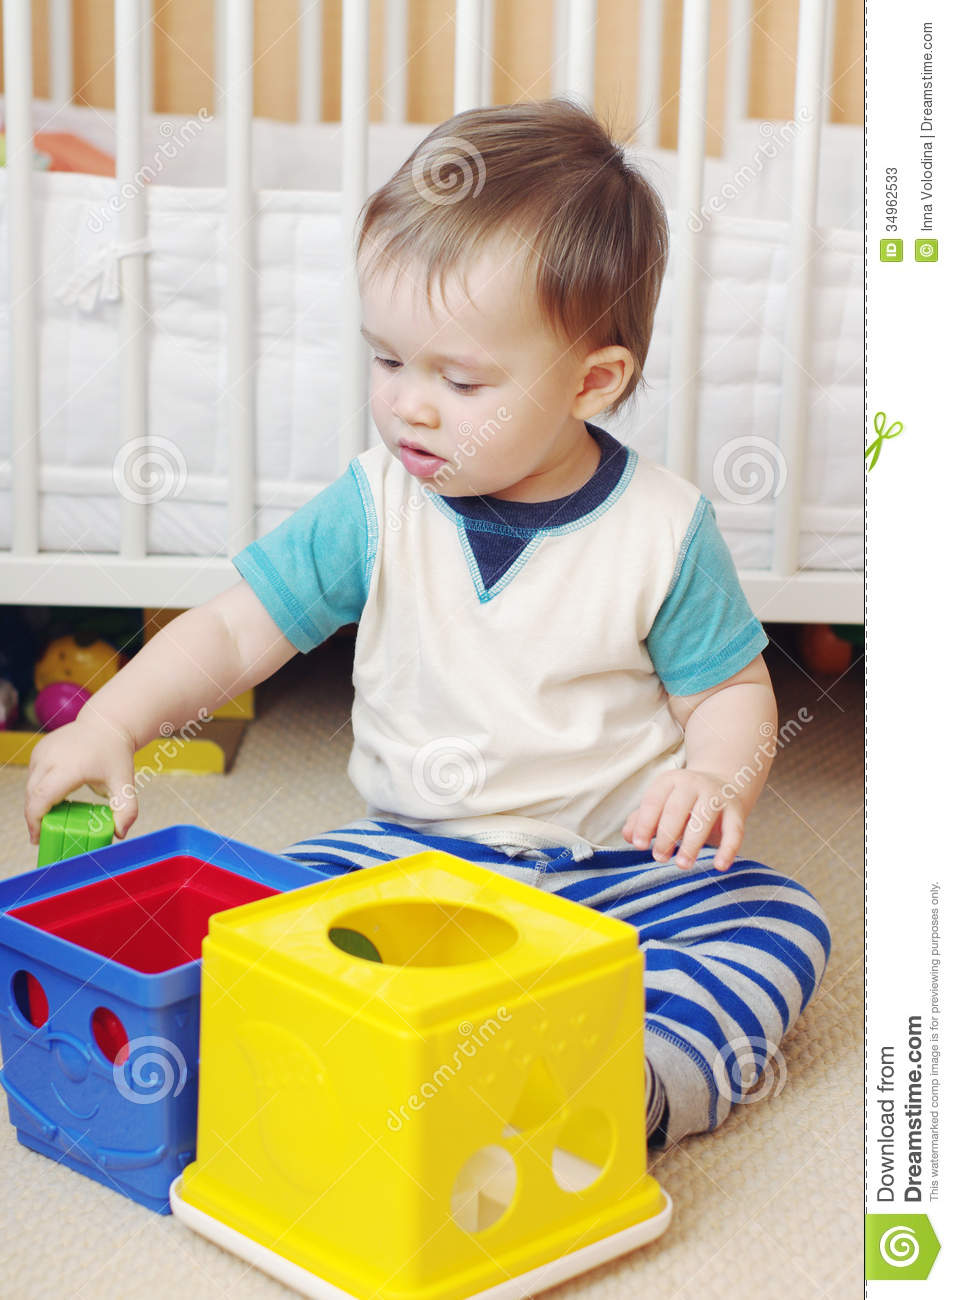 Baby Toys Age 1 : Baby age of year plays toys at home stock photos image